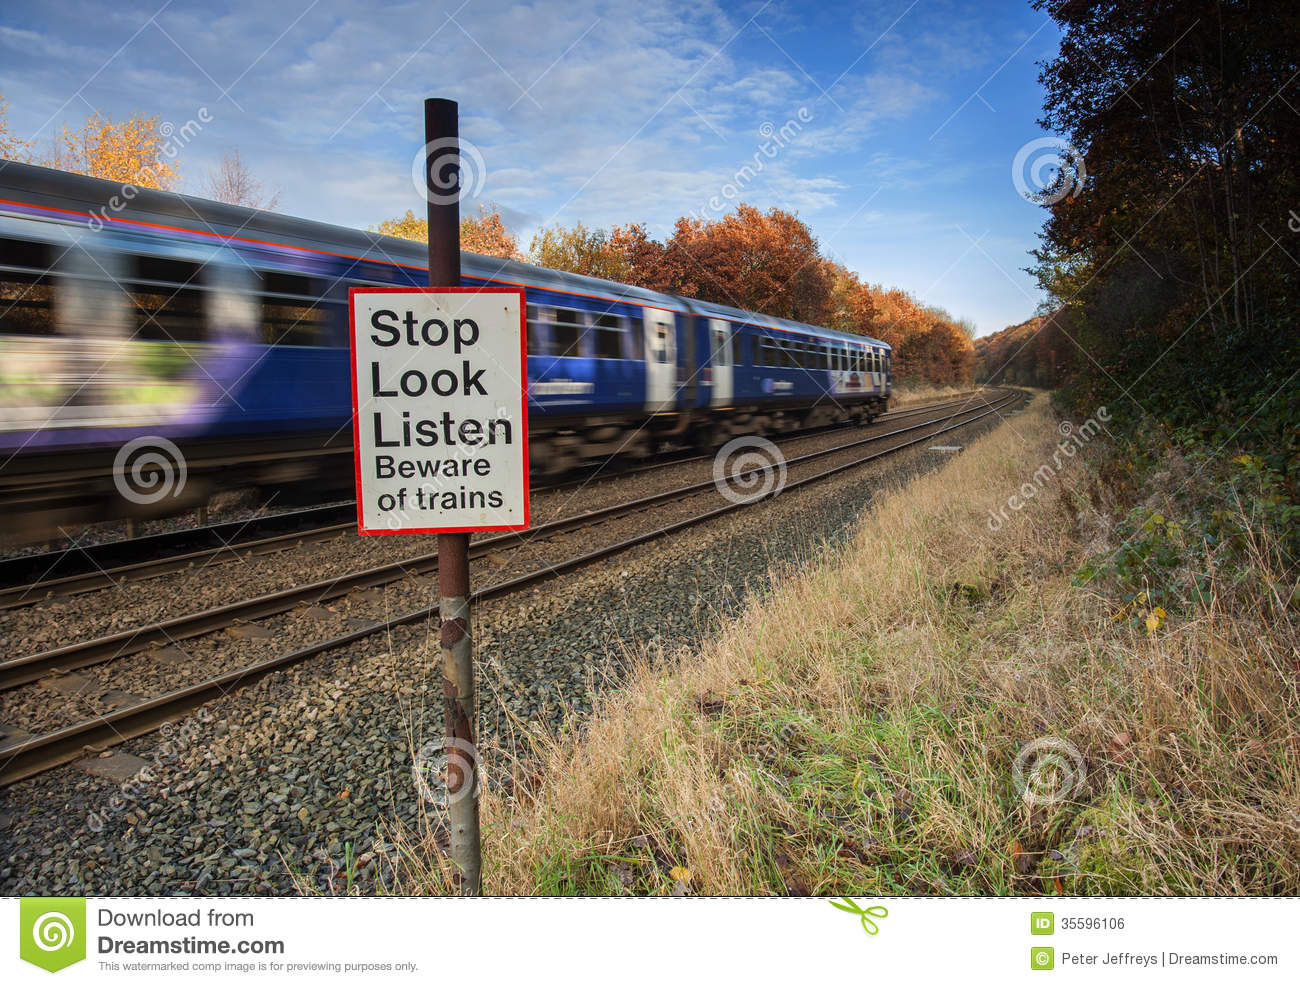 Stop Look Listen Warning At Level Crossing Stock Photo